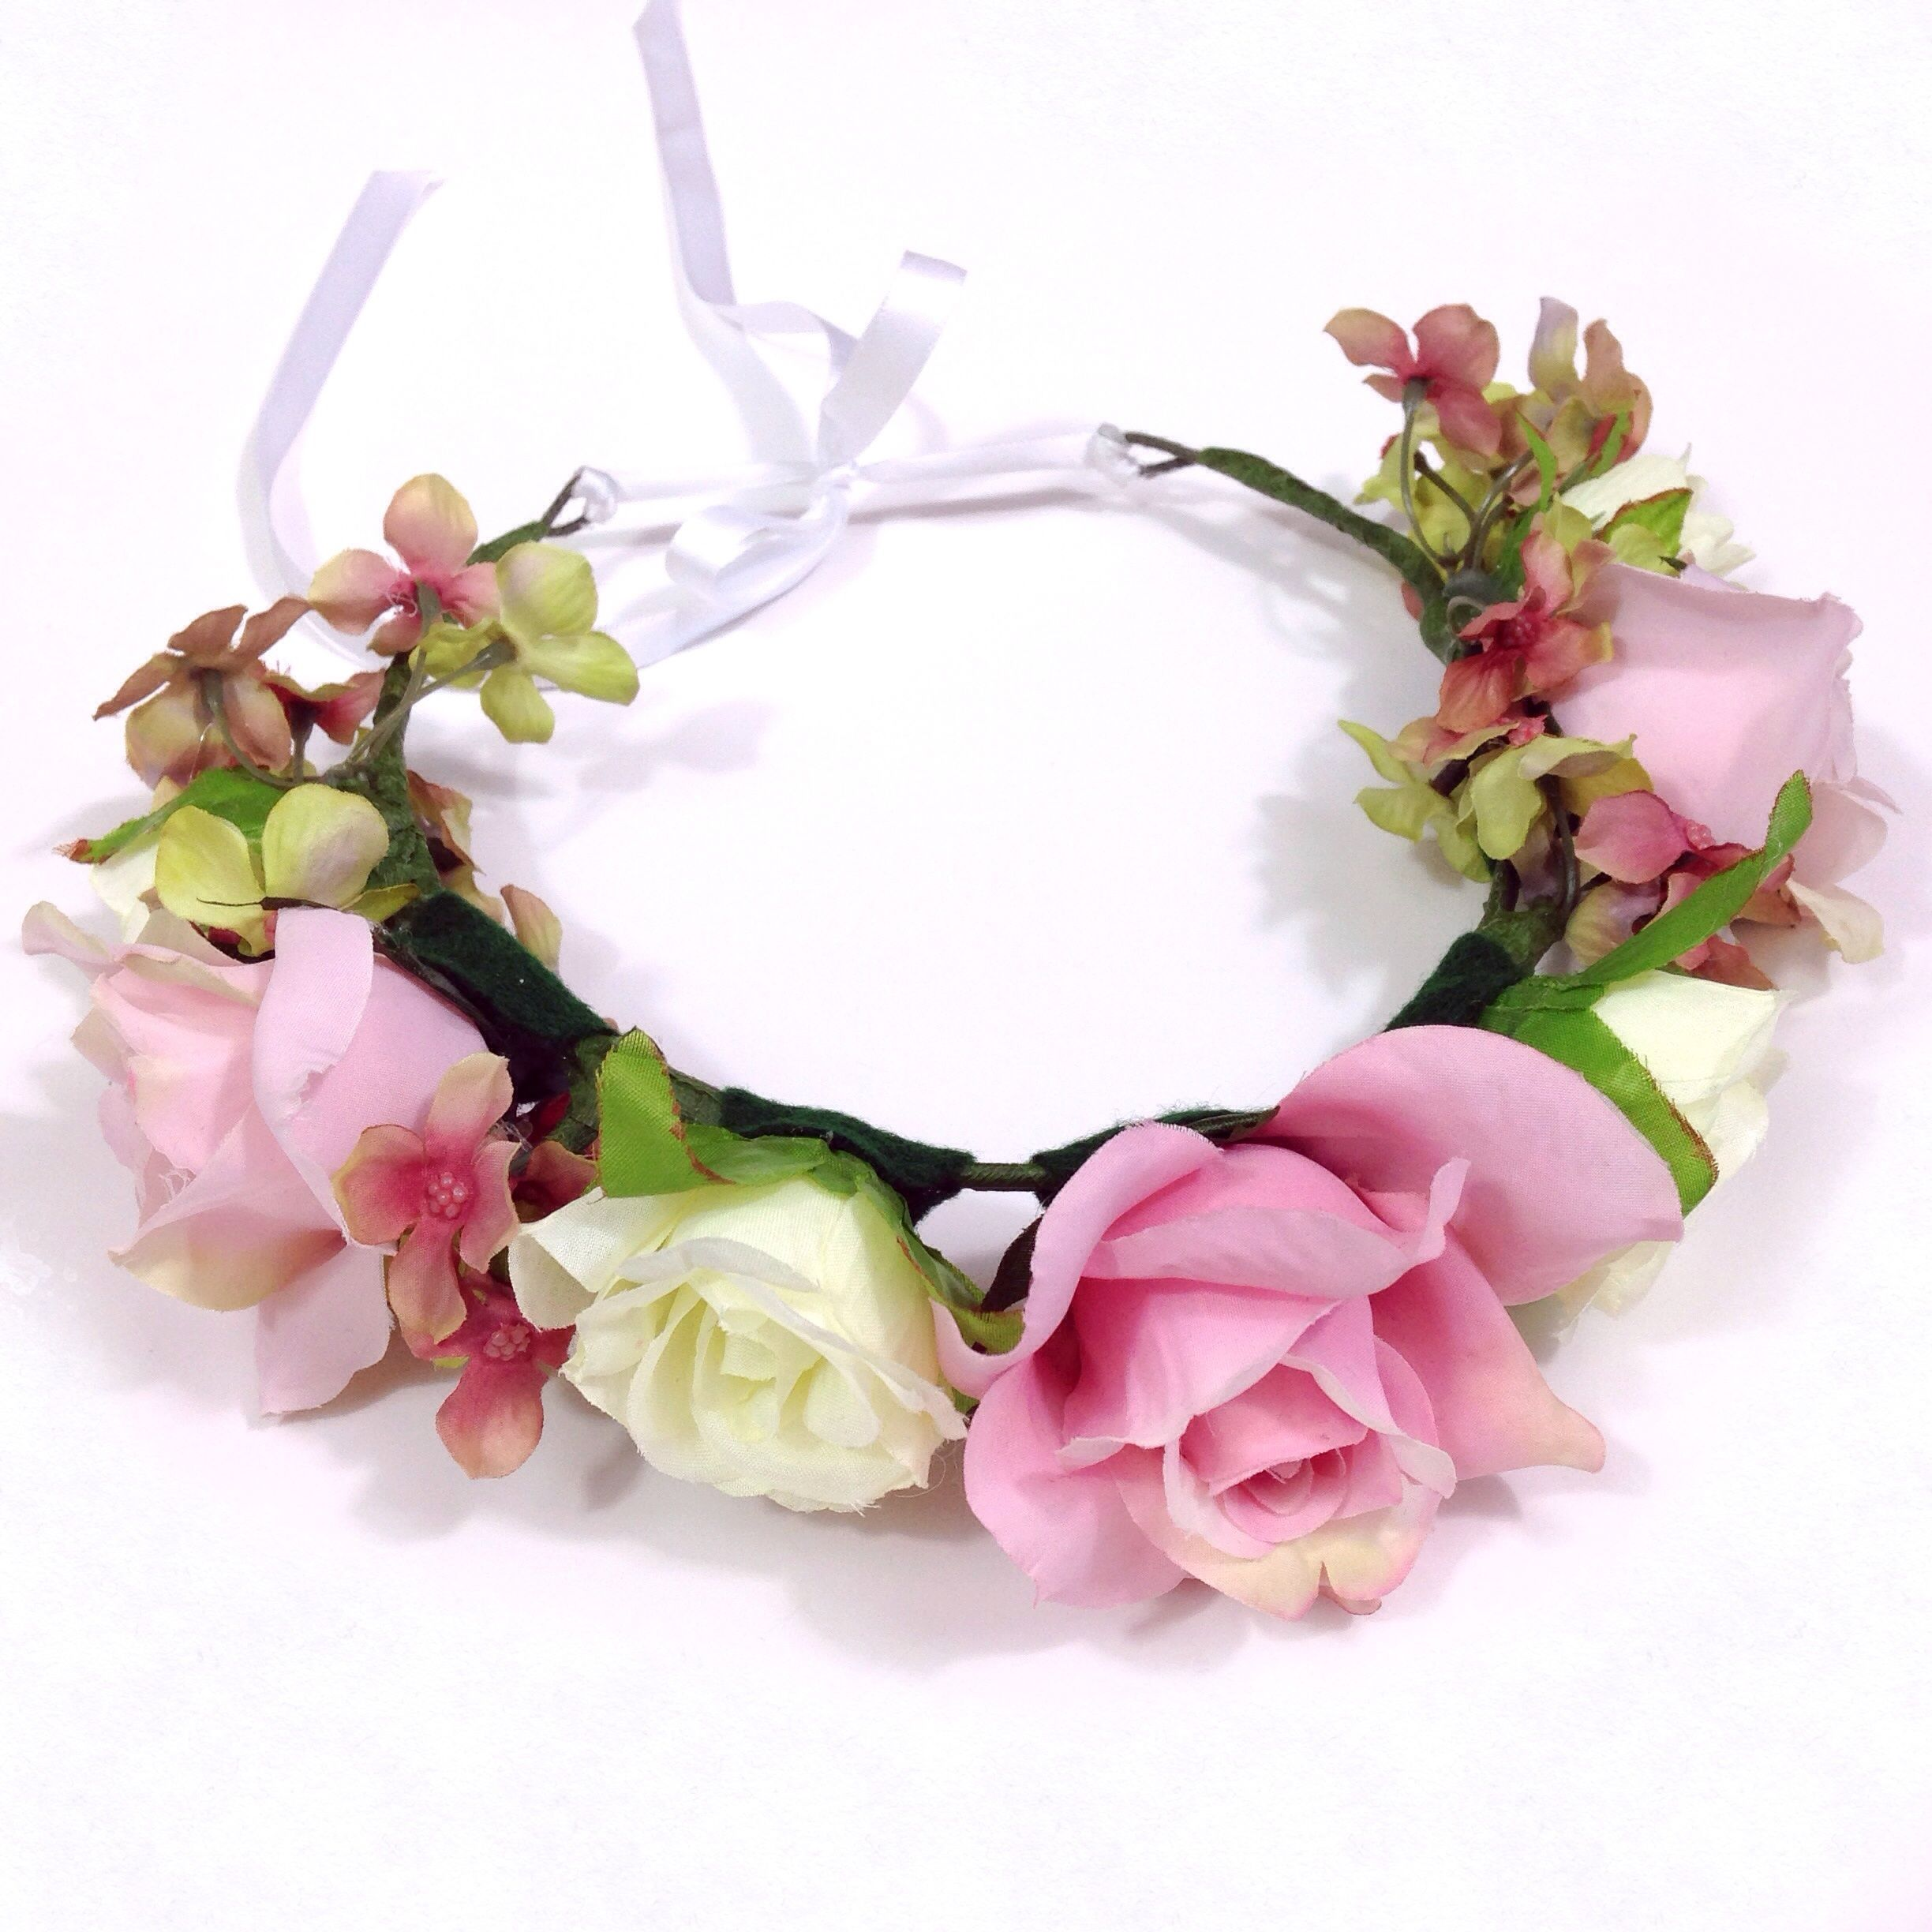 100 High Quality Handmade Flower Crown Made From High Quality Silk